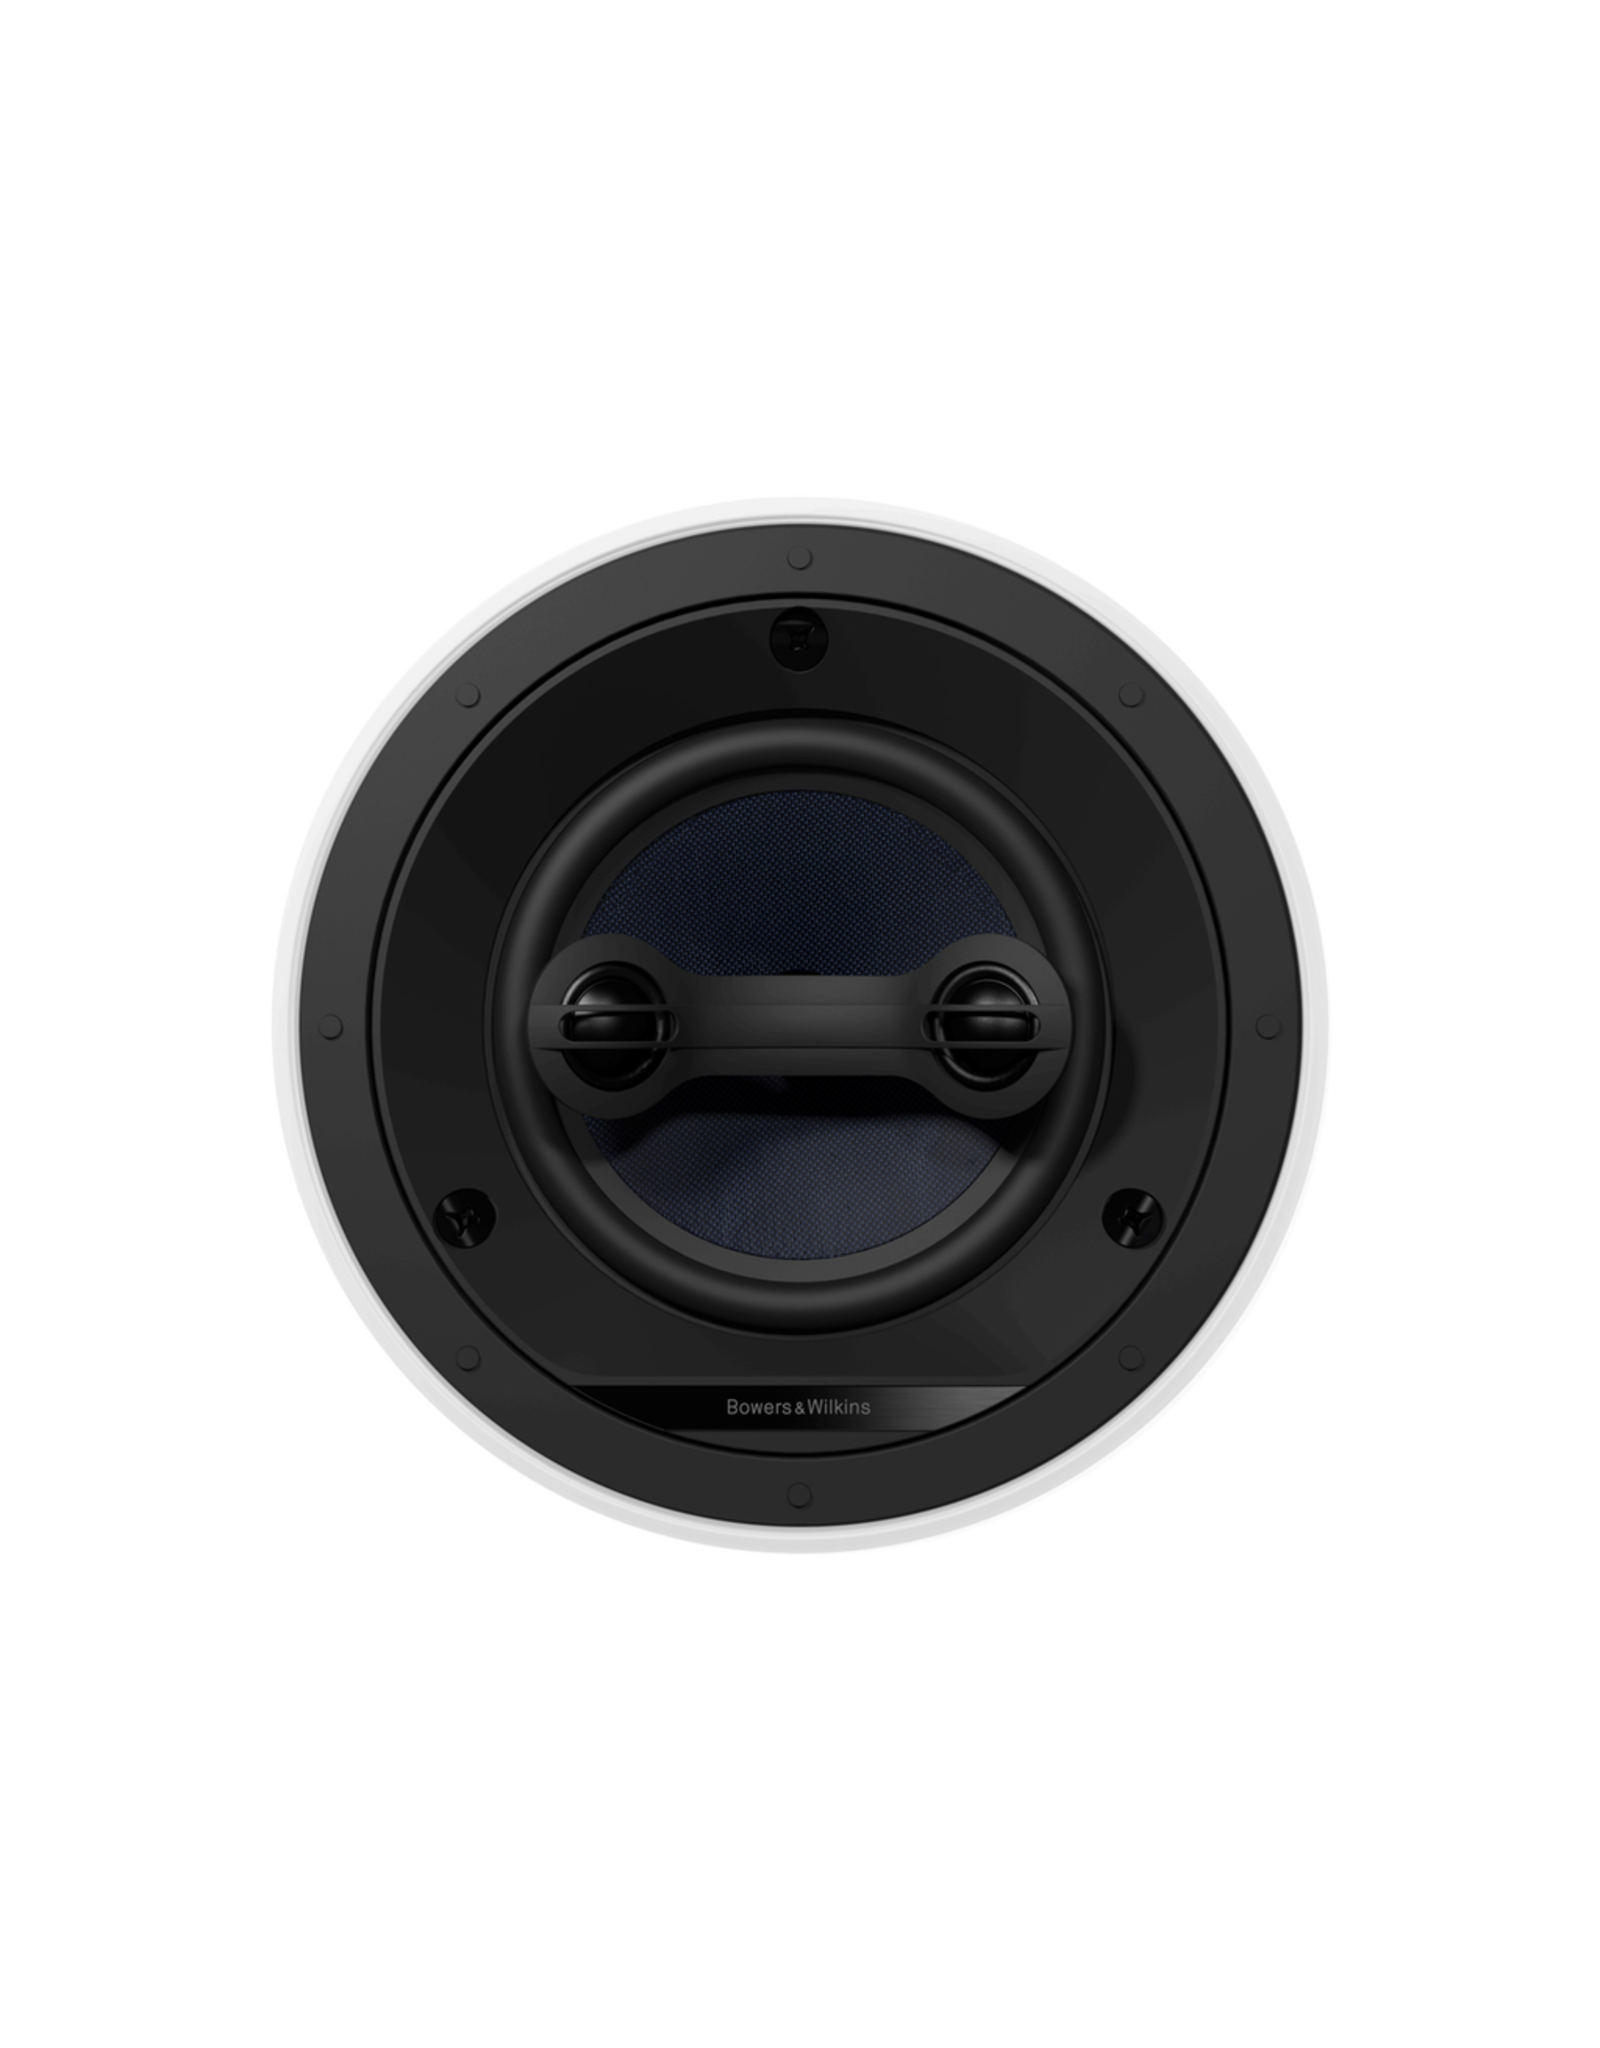 BOWERS & WILKINS B&W CCM663SR  In Ceiling Surr/SST Speaker (single) WHITE